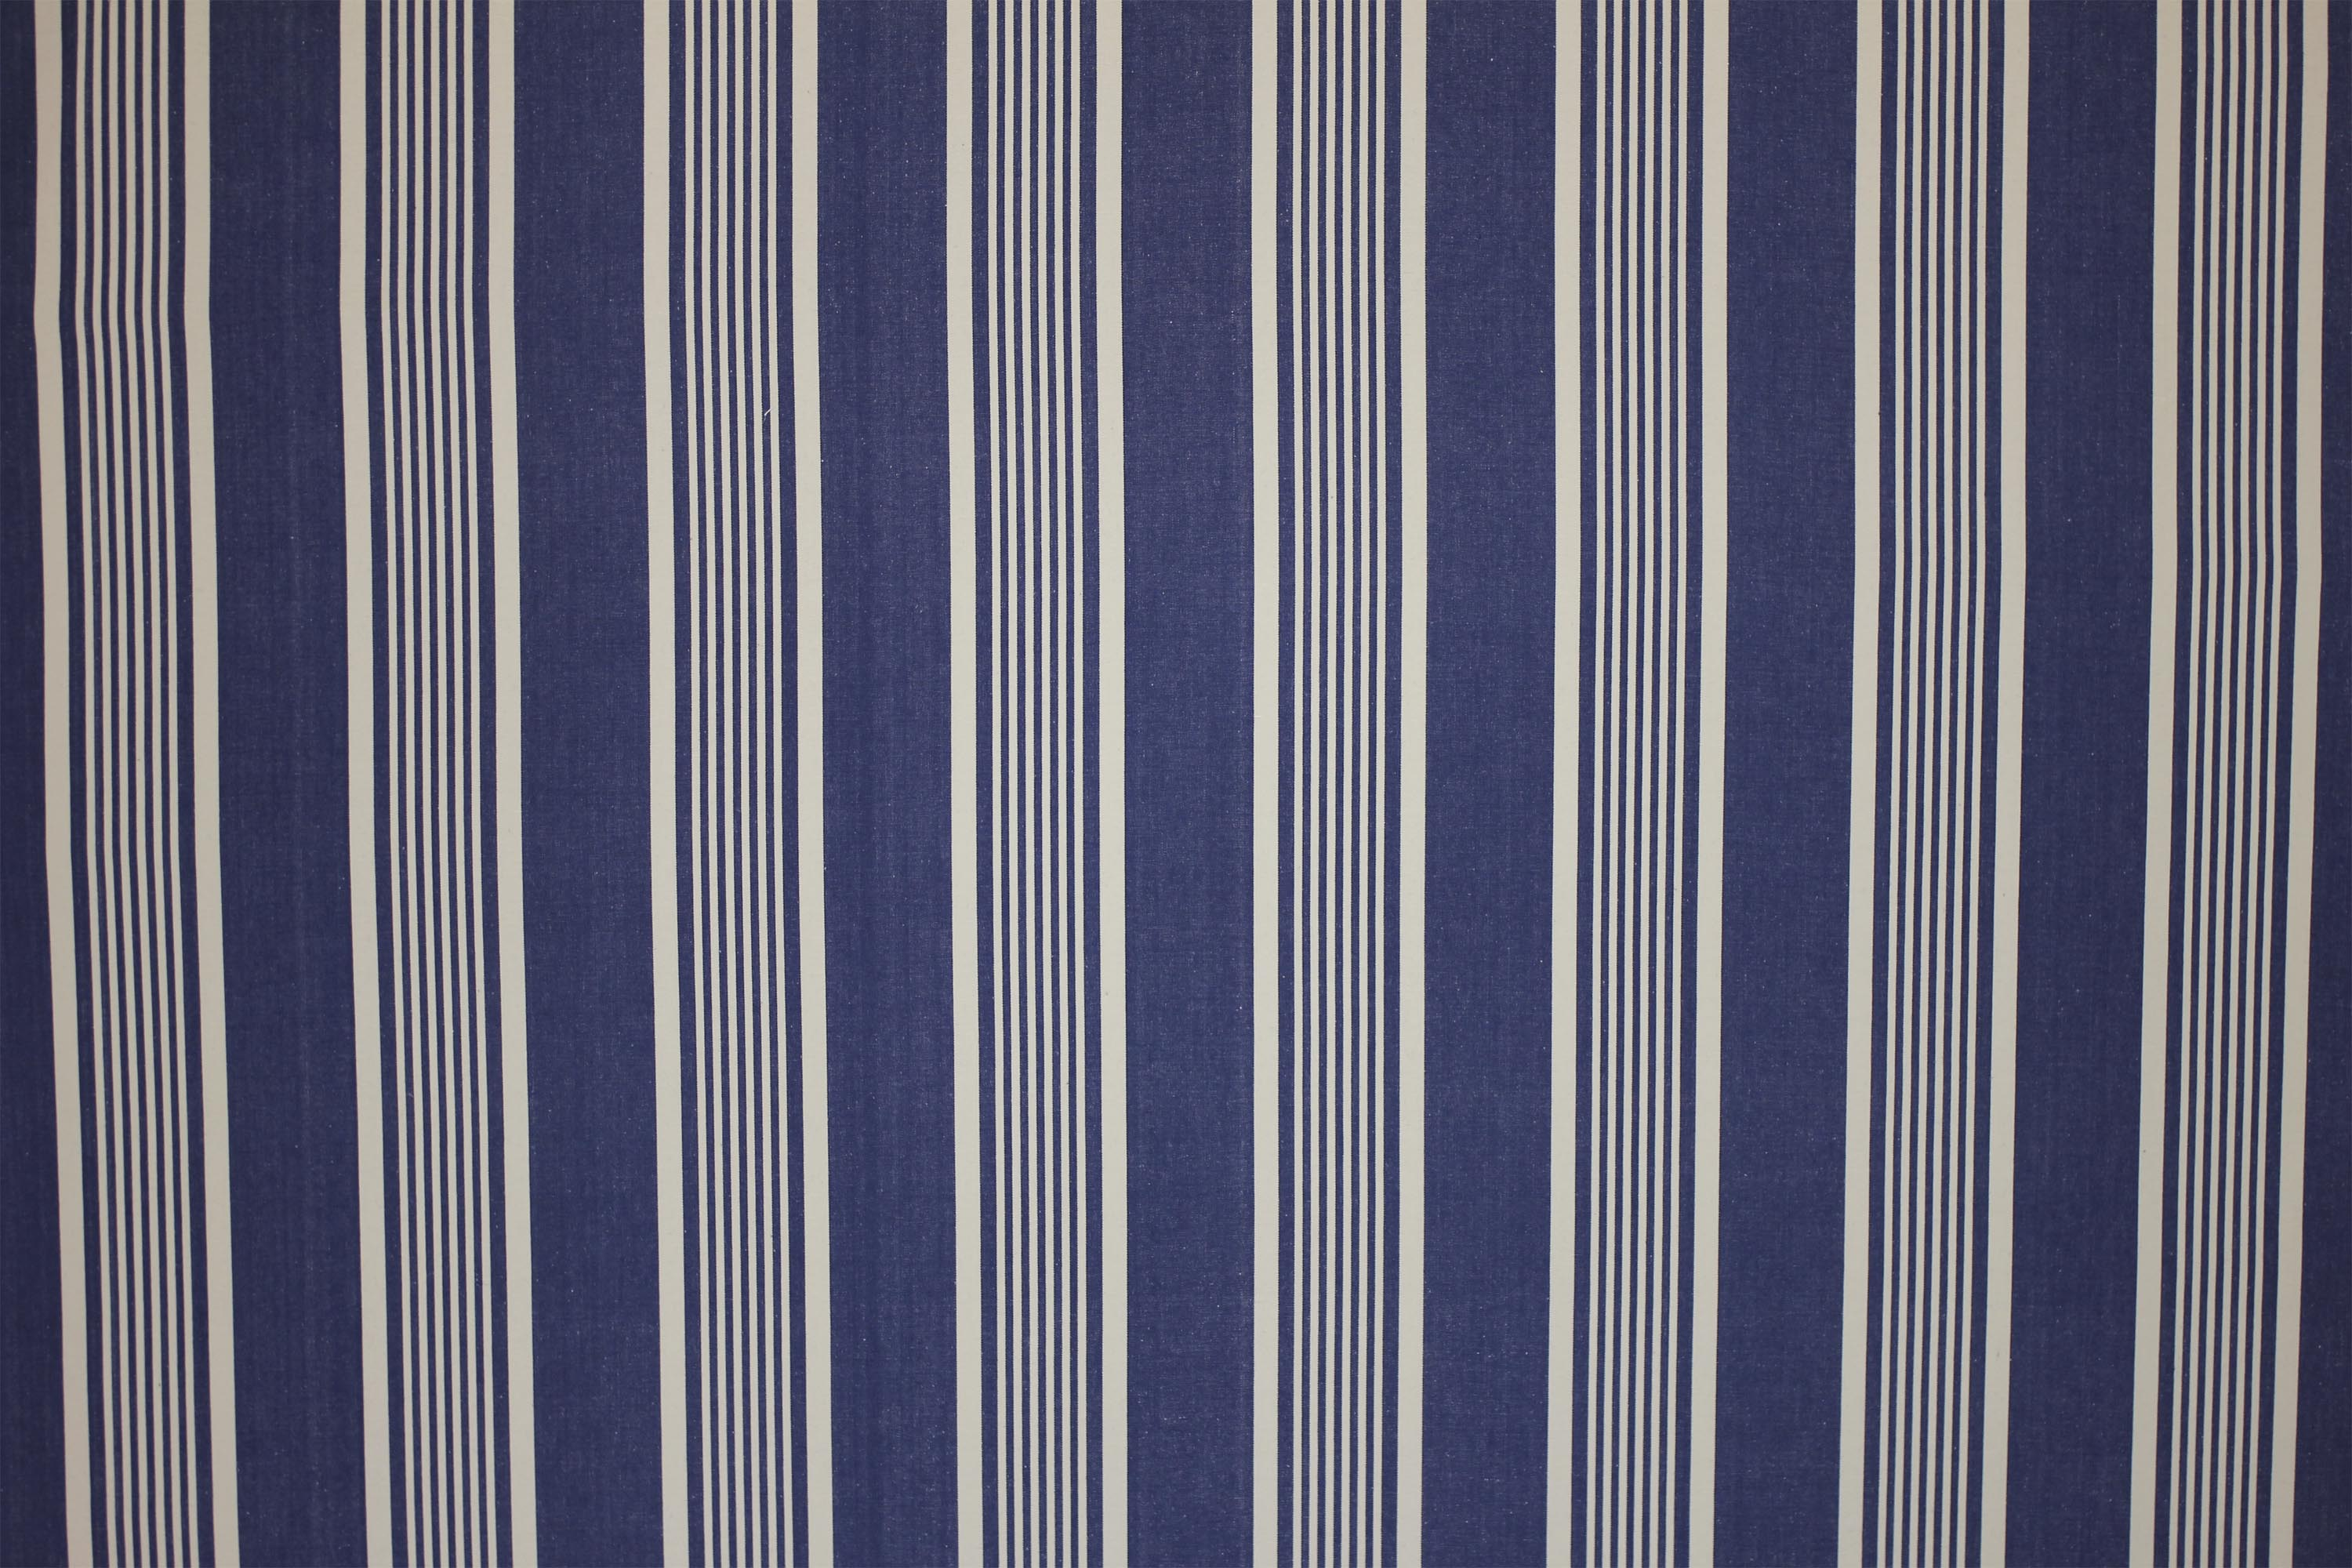 Snowboarding Navy Blue Striped Fabric